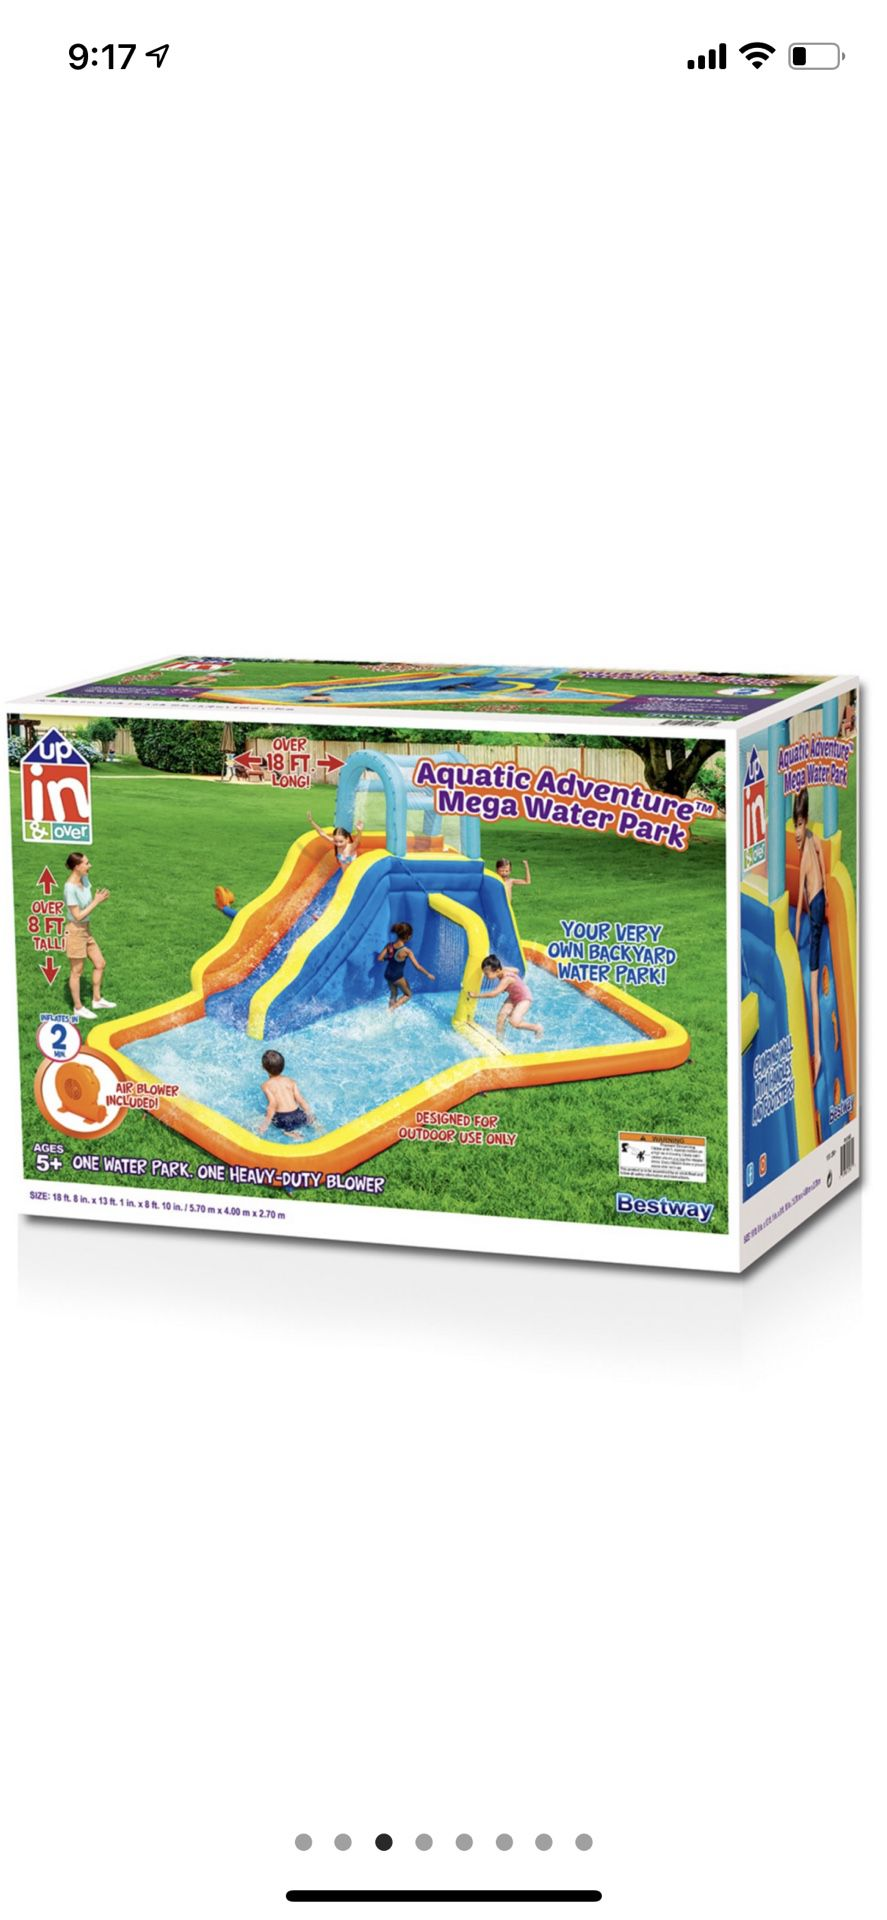 Photo Fresno Pick Up The Aquatic Adventure Mega Water Park is the ideal backyard play experience. This inflatable